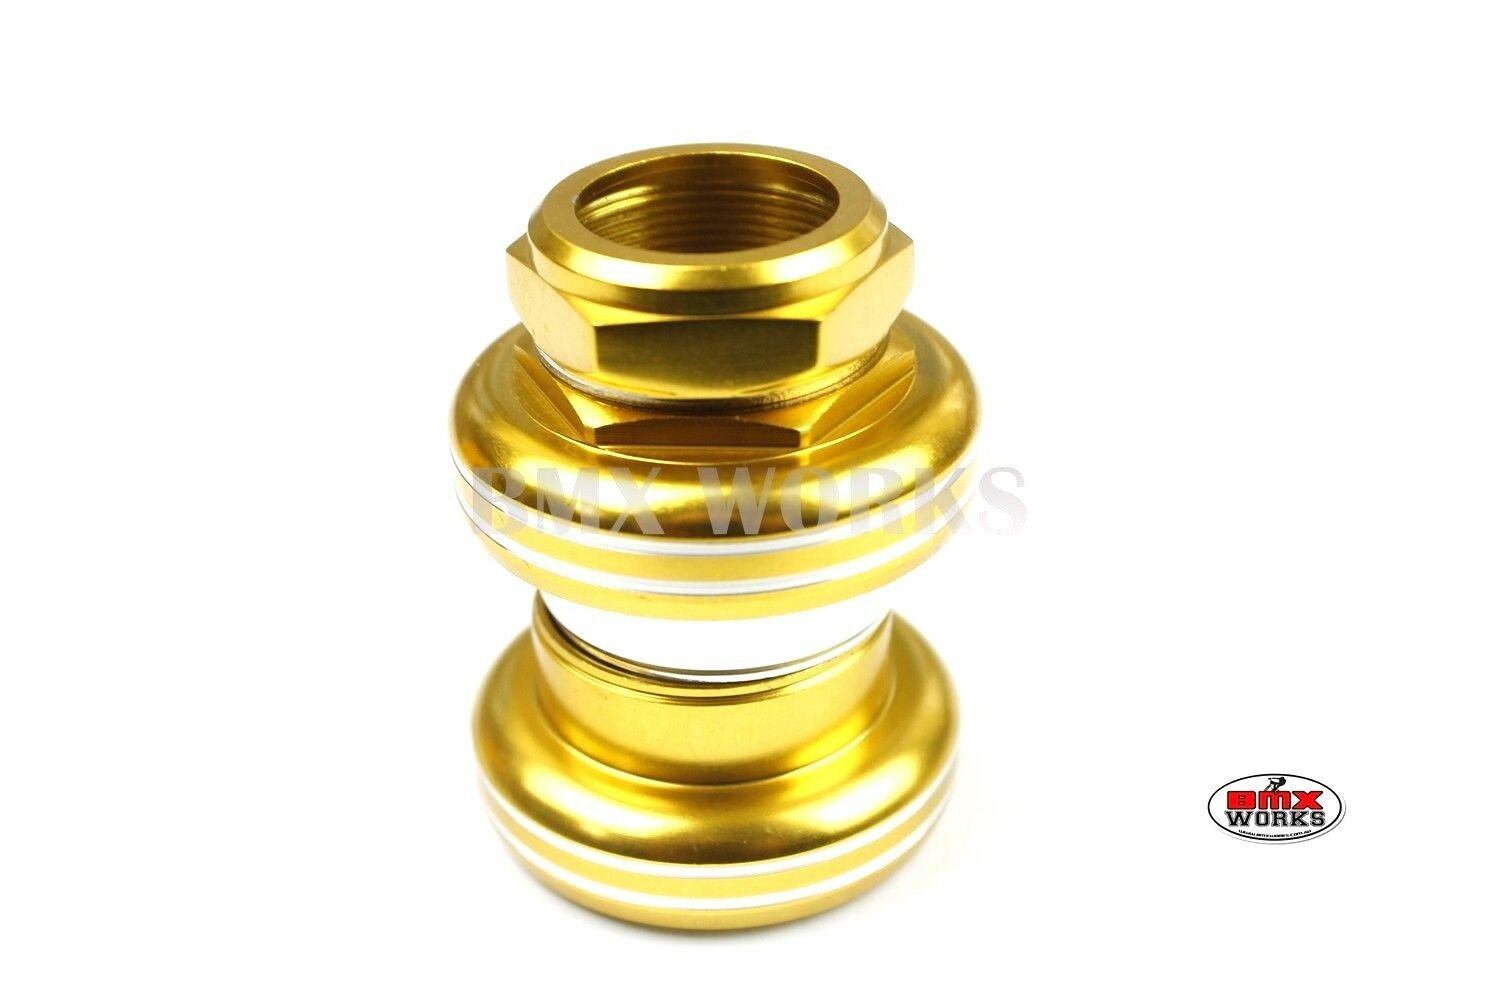 ProBMX Retro MX100 Aluminium Headset -  gold - Old School BMX Style  check out the cheapest